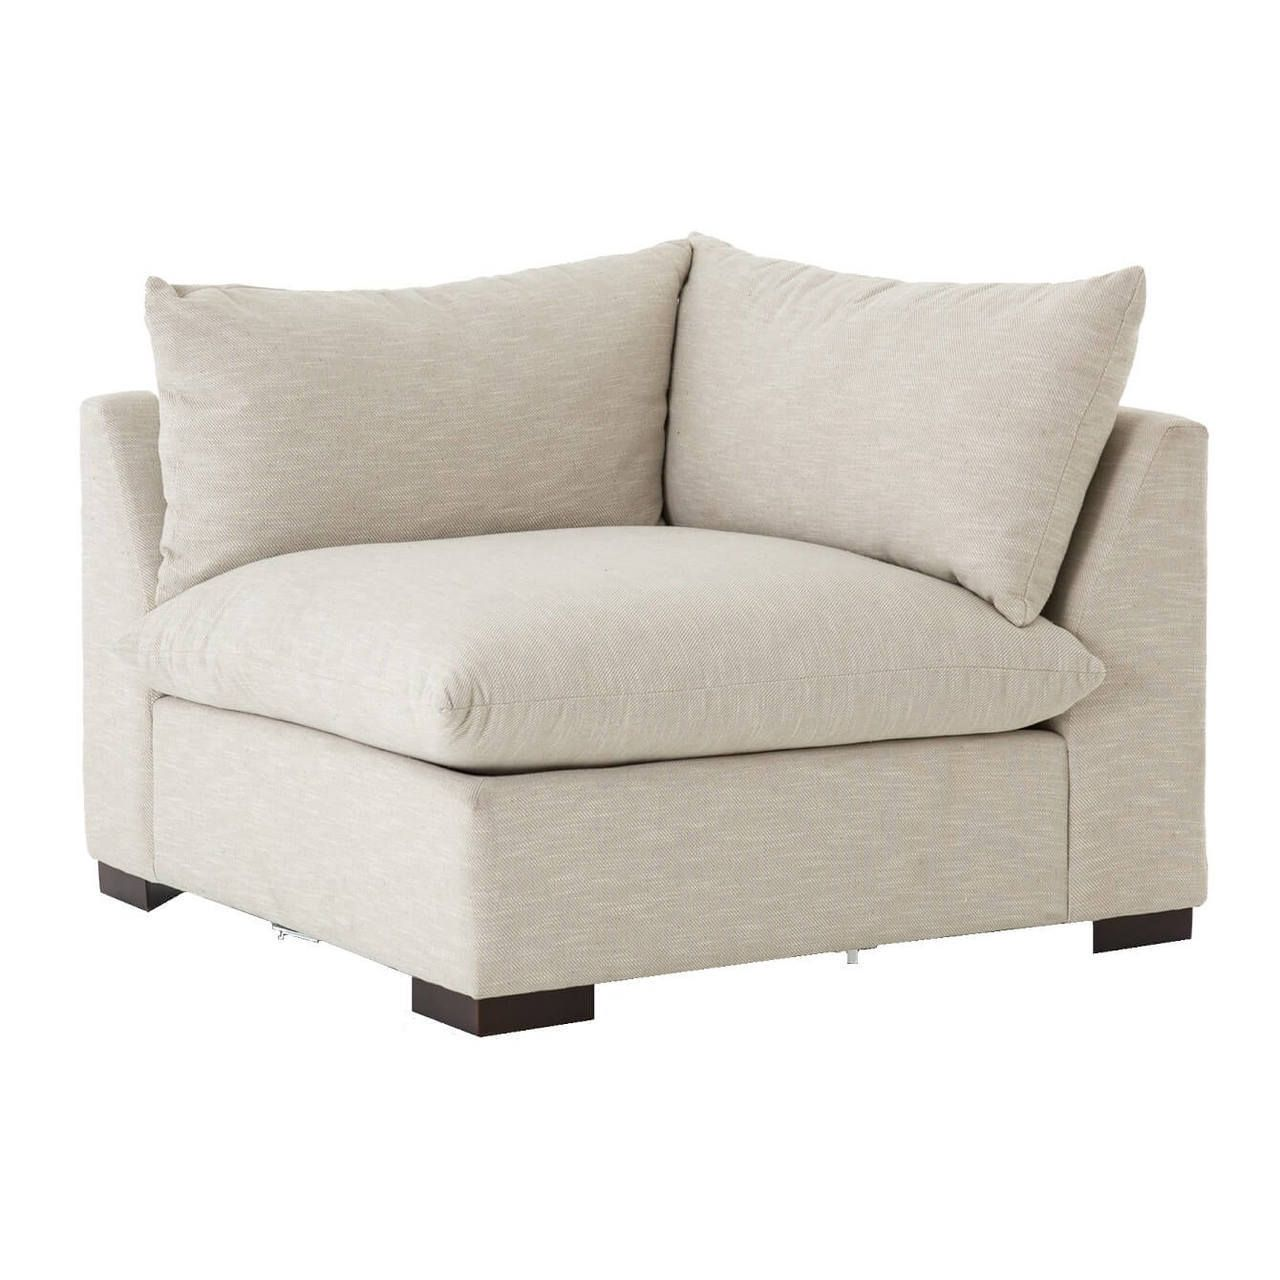 Grant Modern Oatmeal Sectional Corner Chair | Corner, Large Cushions And  Modern.